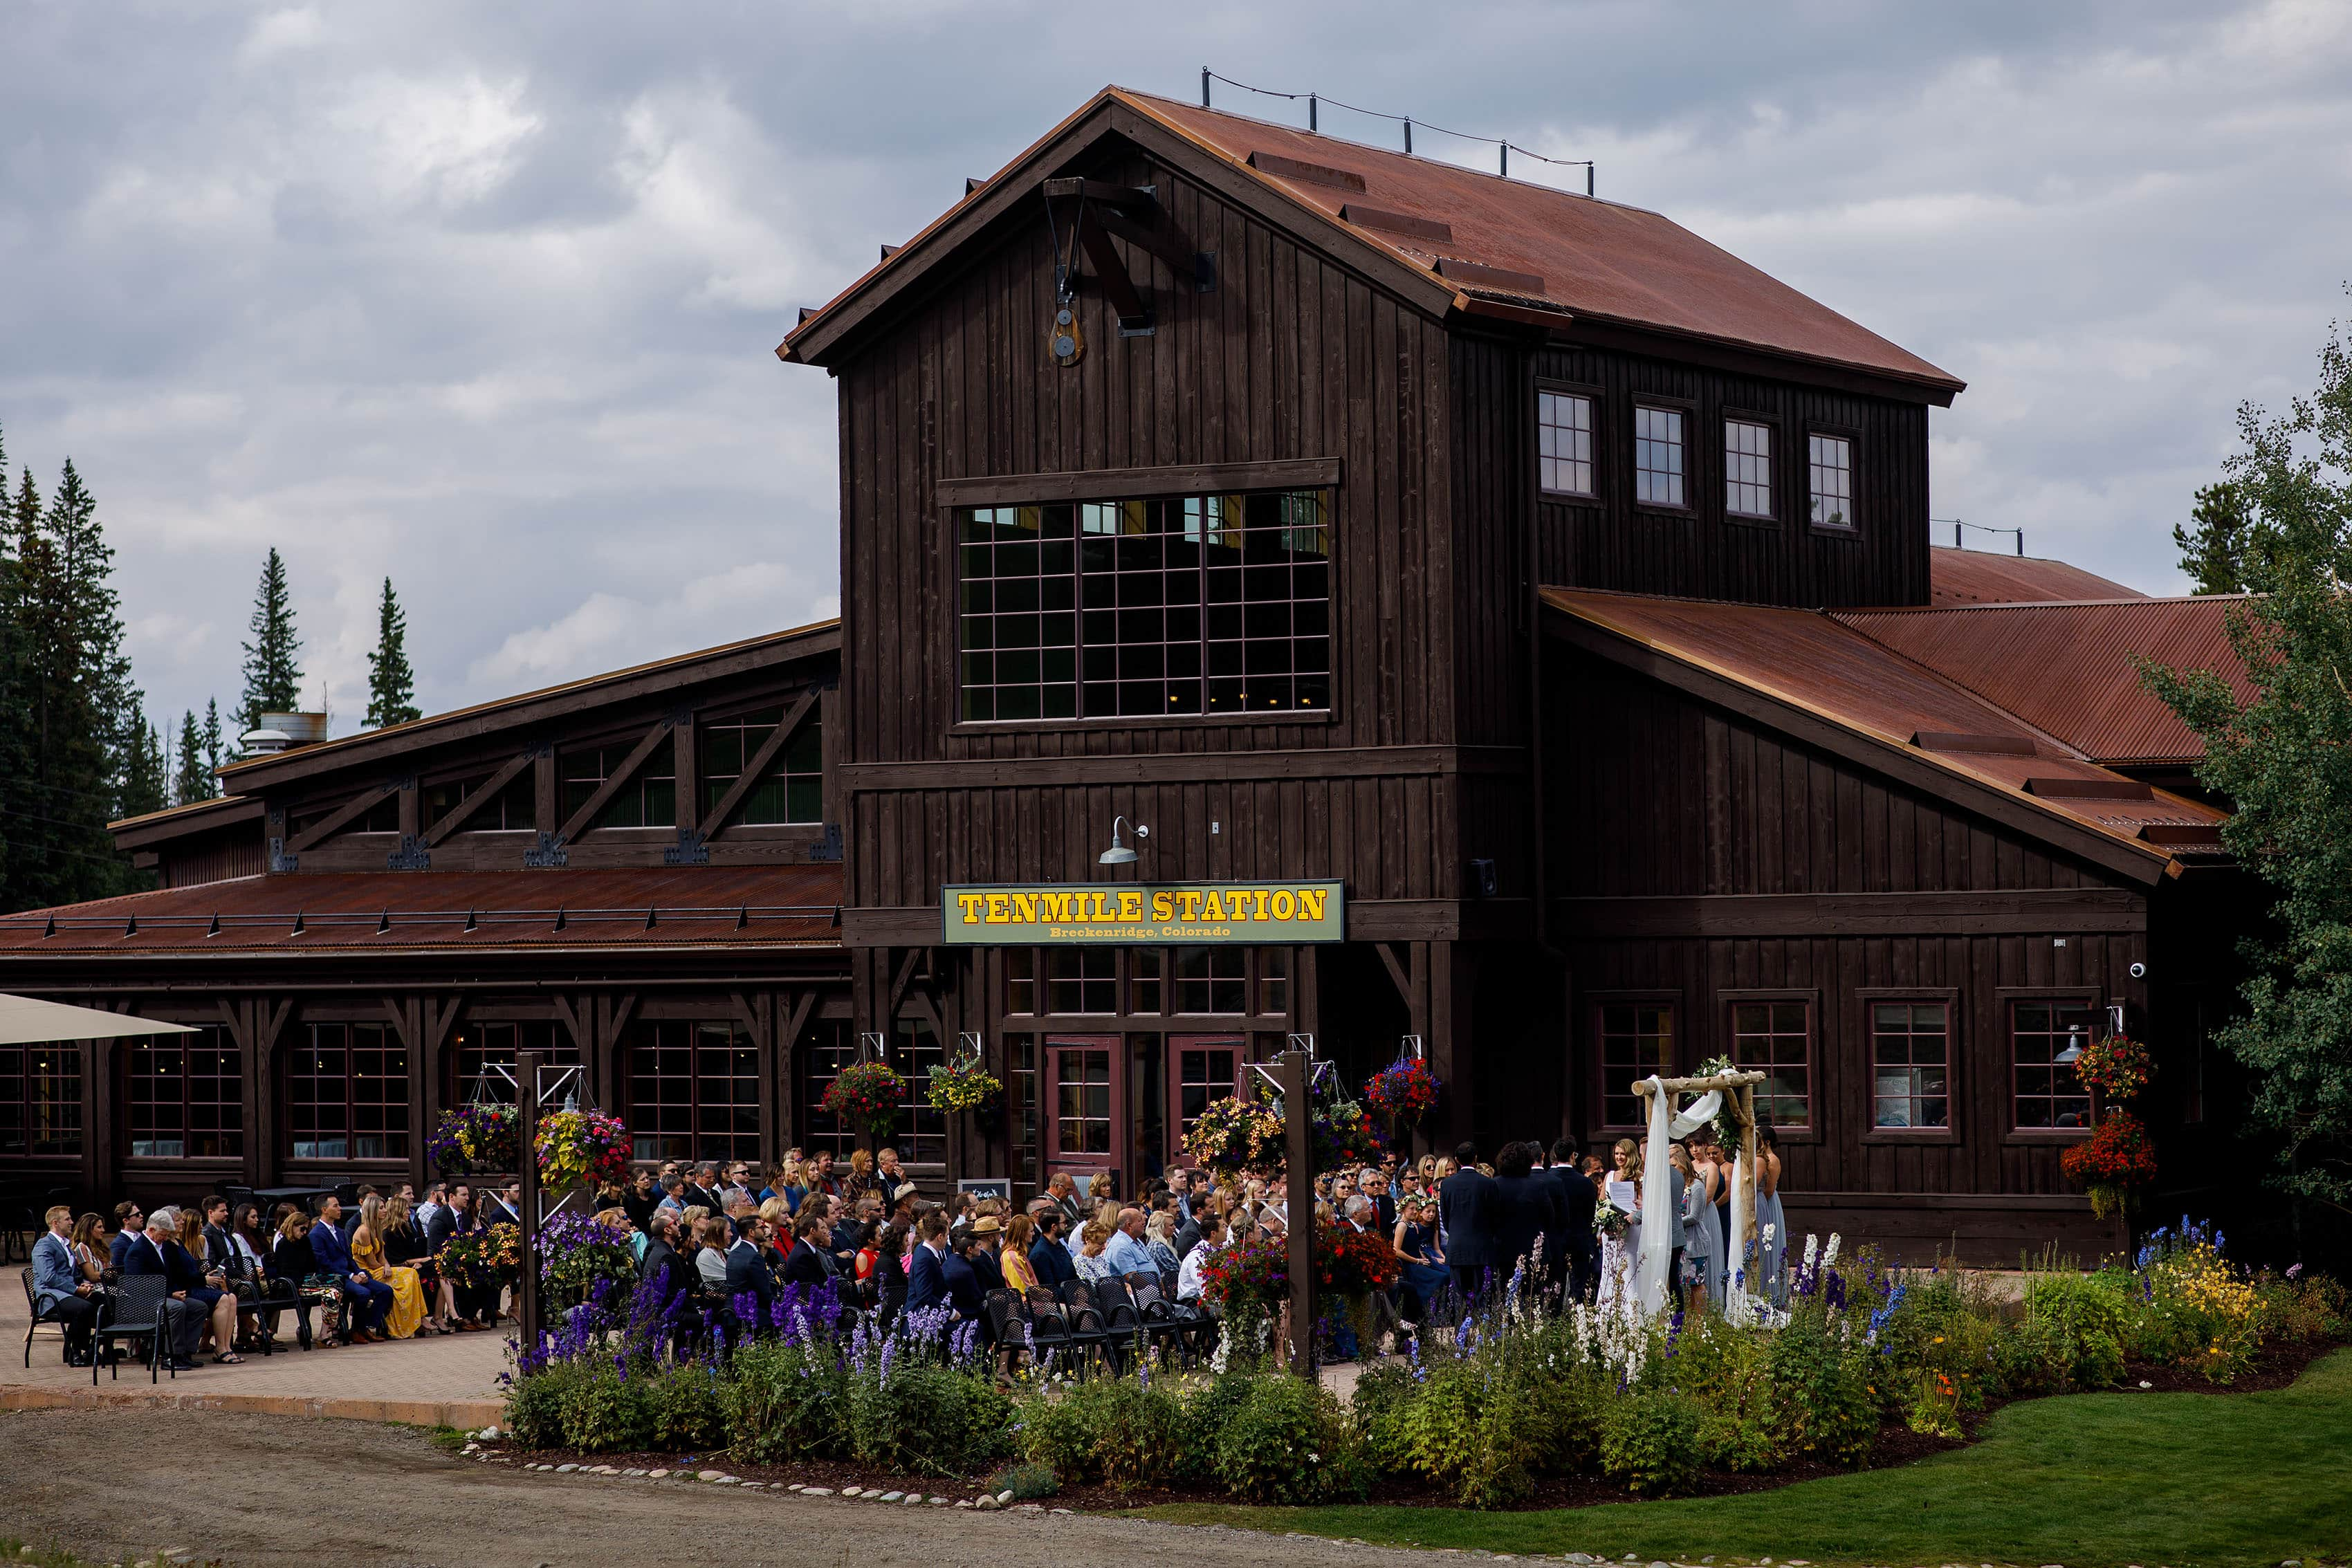 TenMile station wedding ceremony in the summer